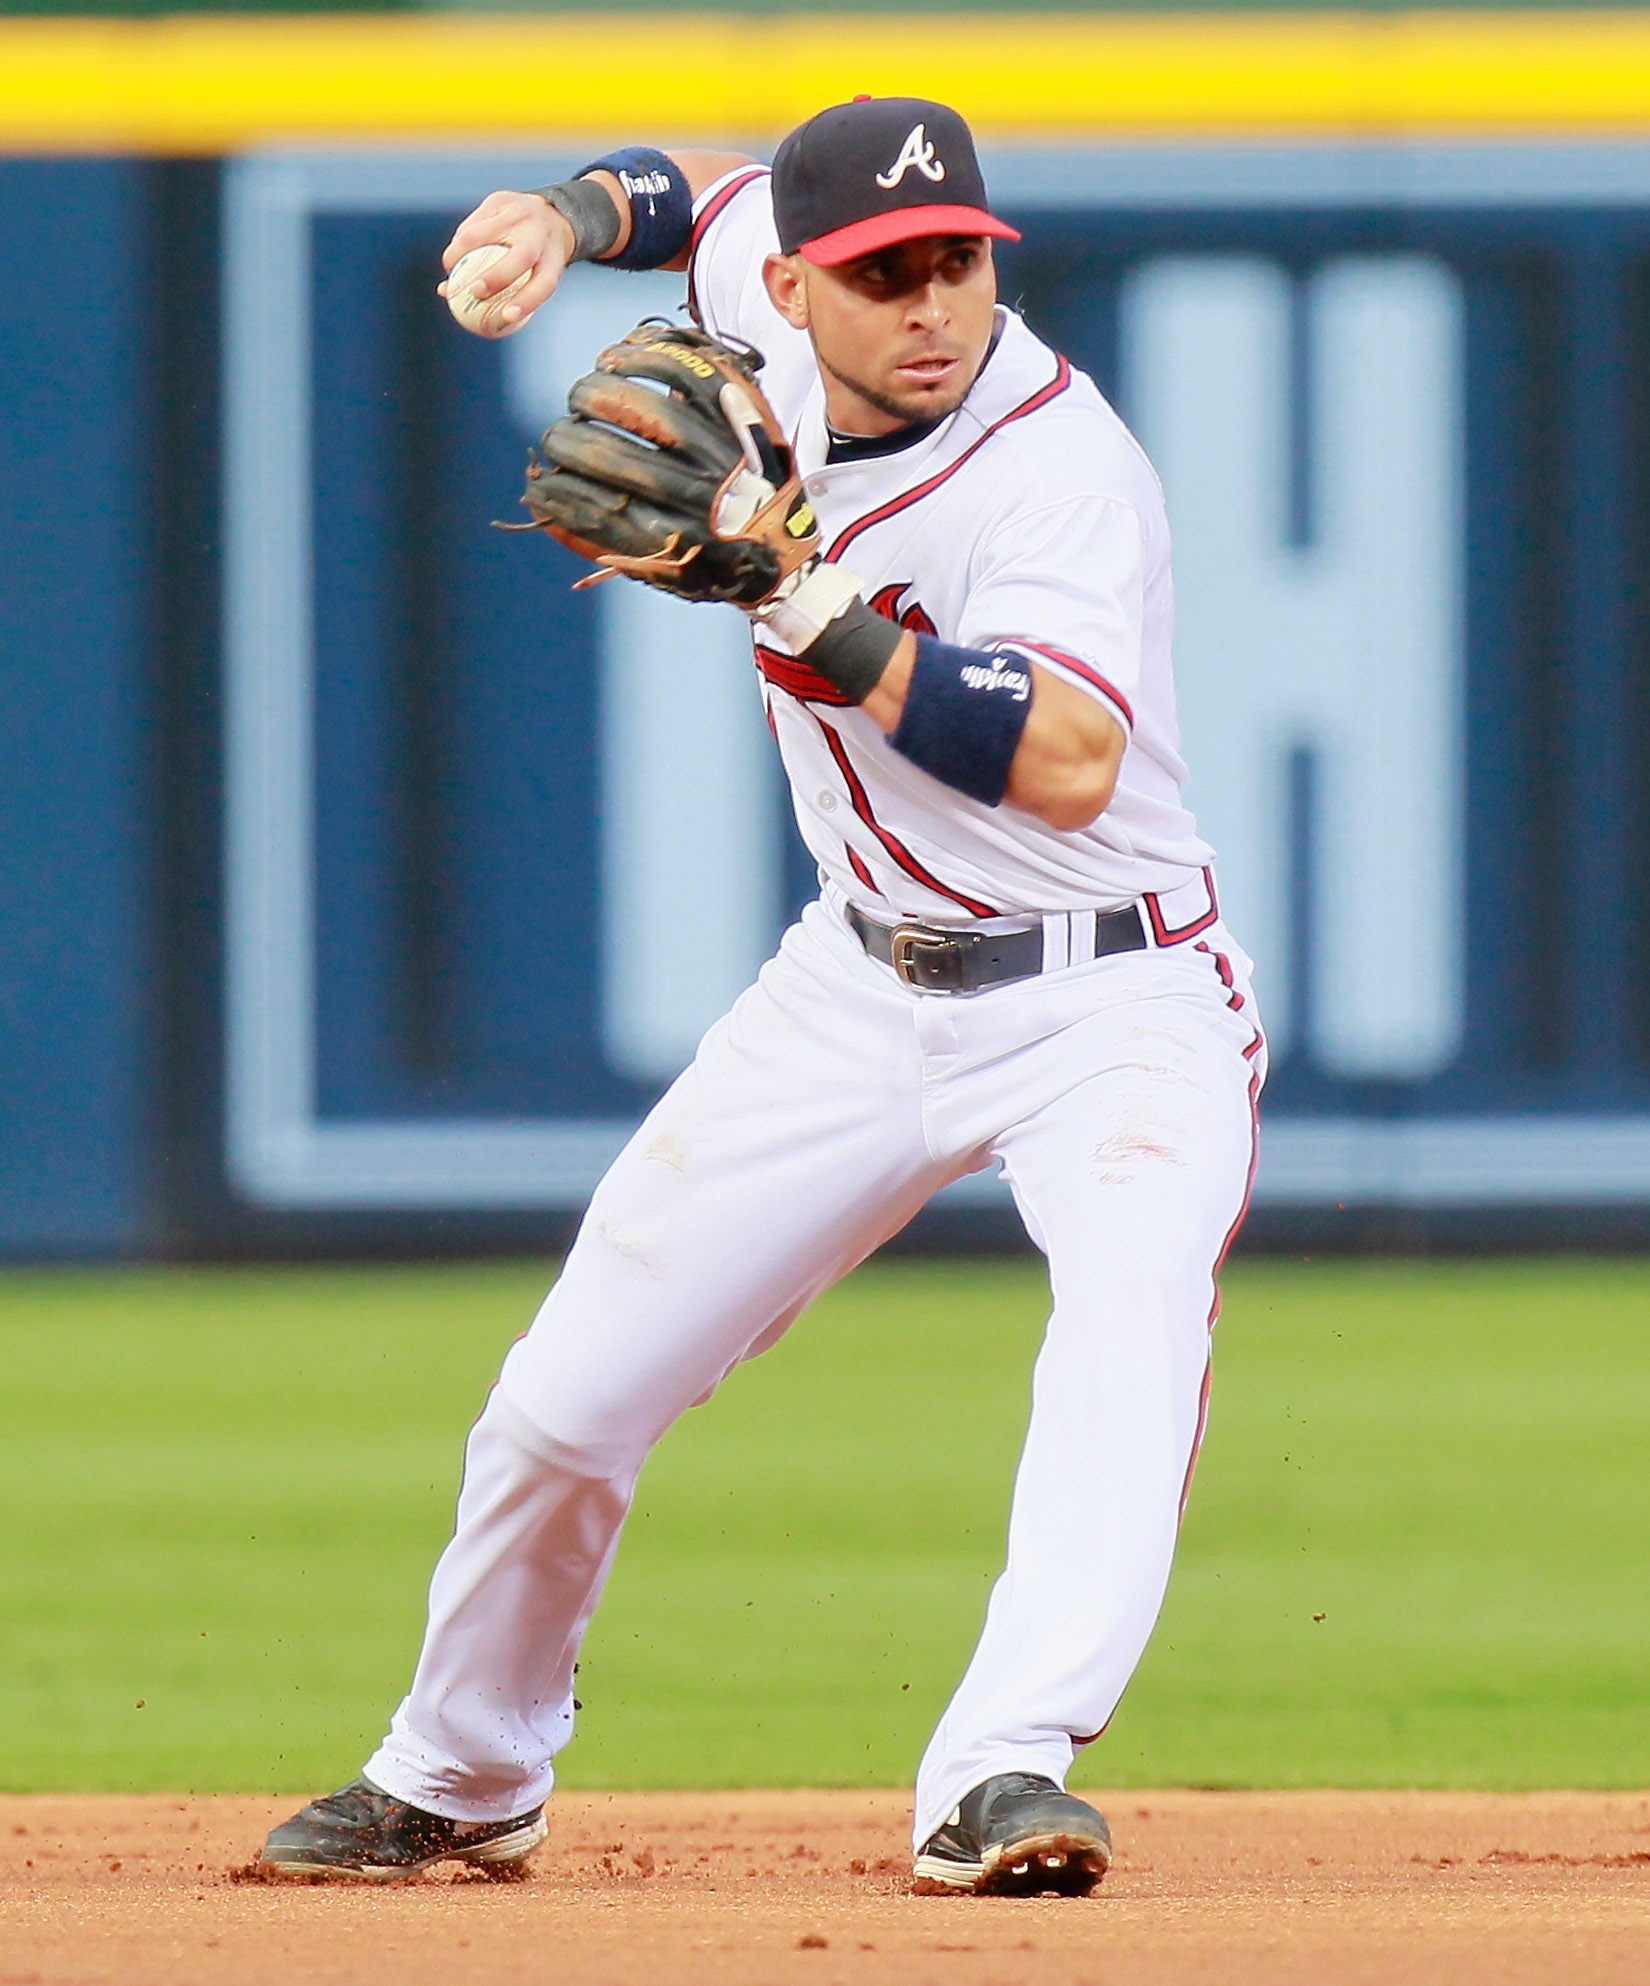 ATLANTA - SEPTEMBER 09:  Omar Infante #4 of the Atlanta Braves against the St. Louis Cardinals at Turner Field on September 9, 2010 in Atlanta, Georgia.  (Photo by Kevin C. Cox/Getty Images)